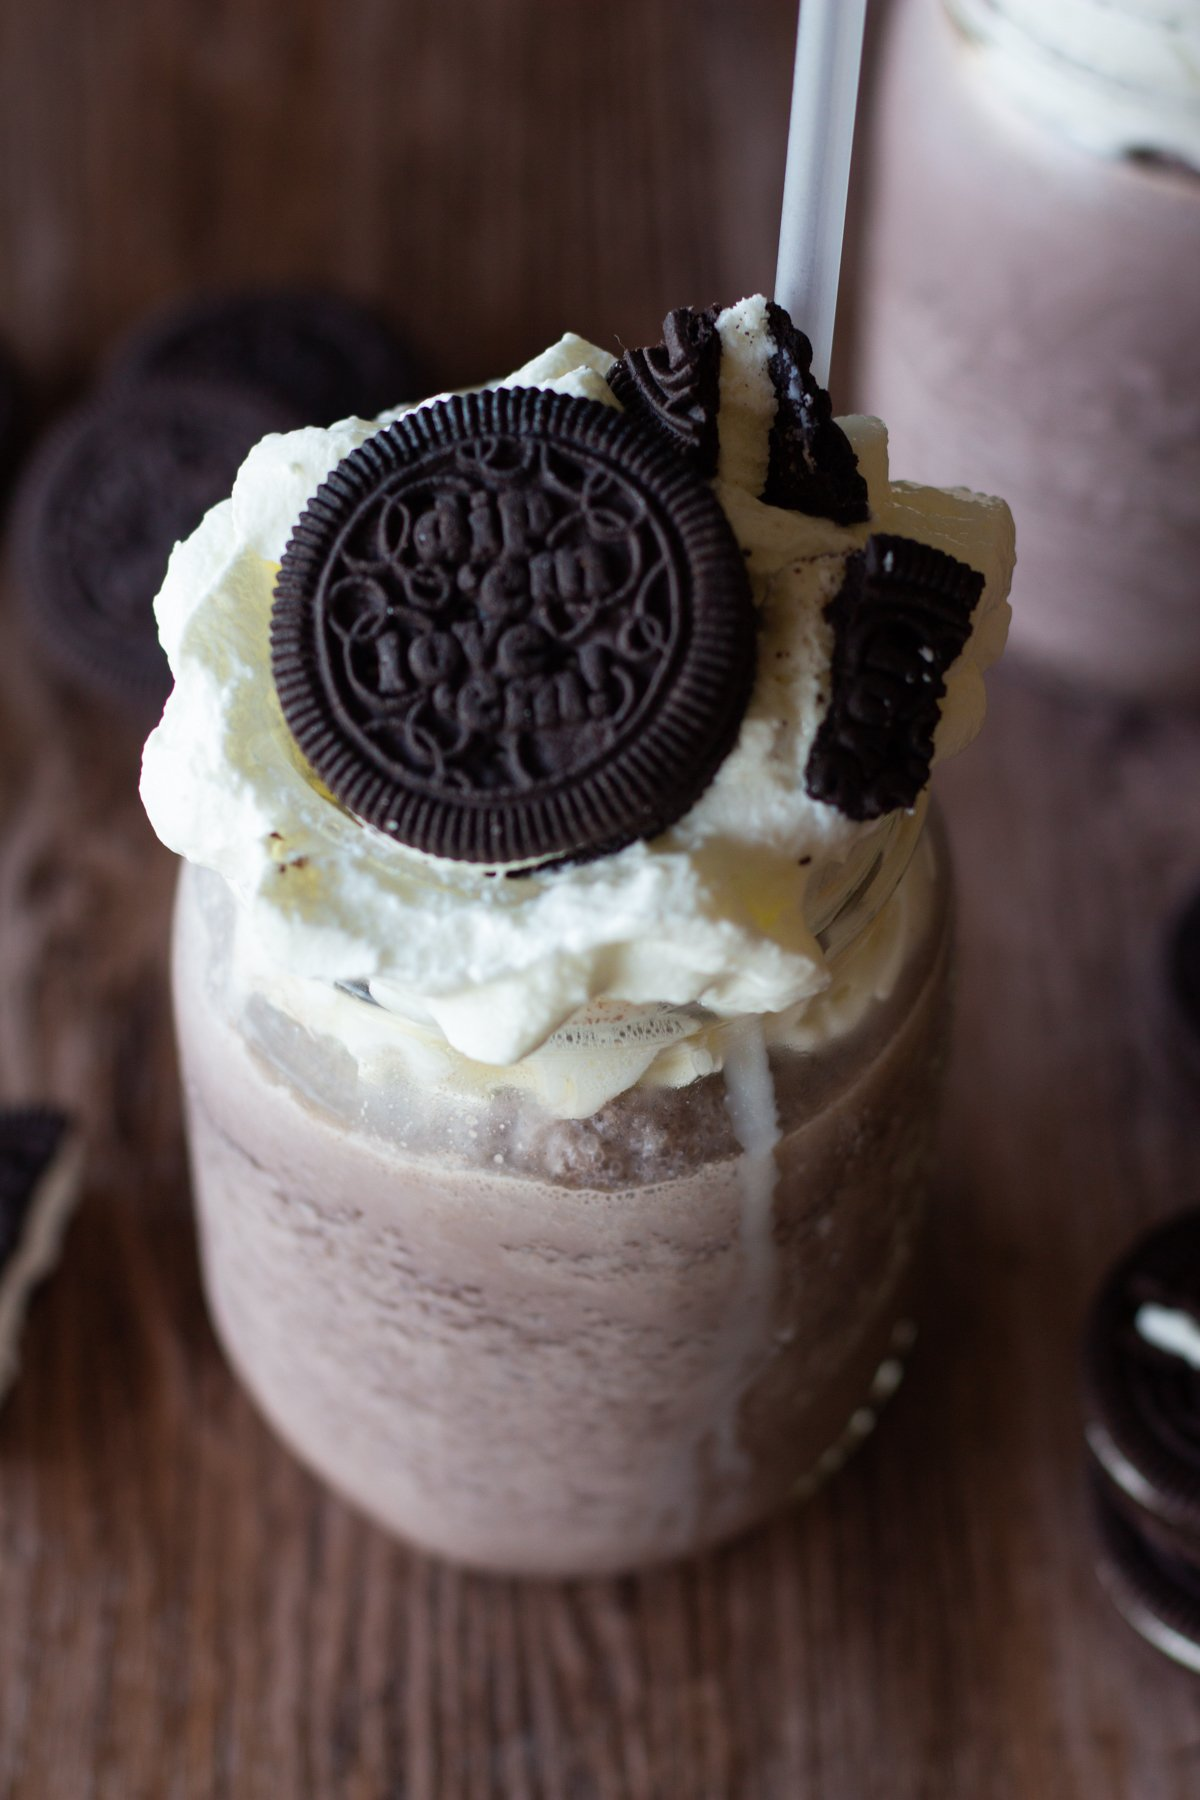 cookies and cream milkshake - This milkshake is better than the one made at chik-fil-a and is full of oreos!